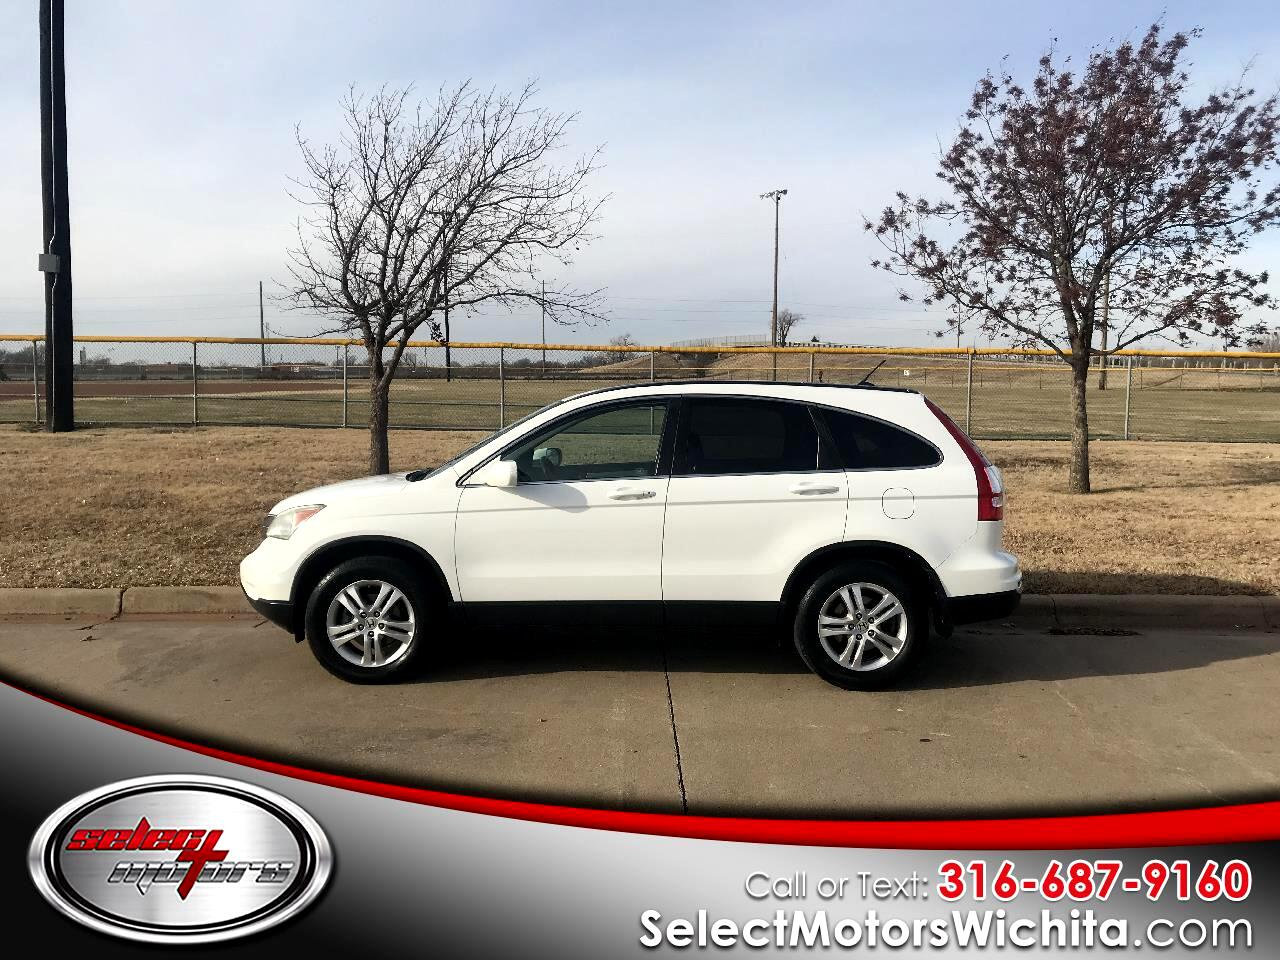 Used 2010 Honda Cr V For Sale In Wichita Ks 67210 Select Motors